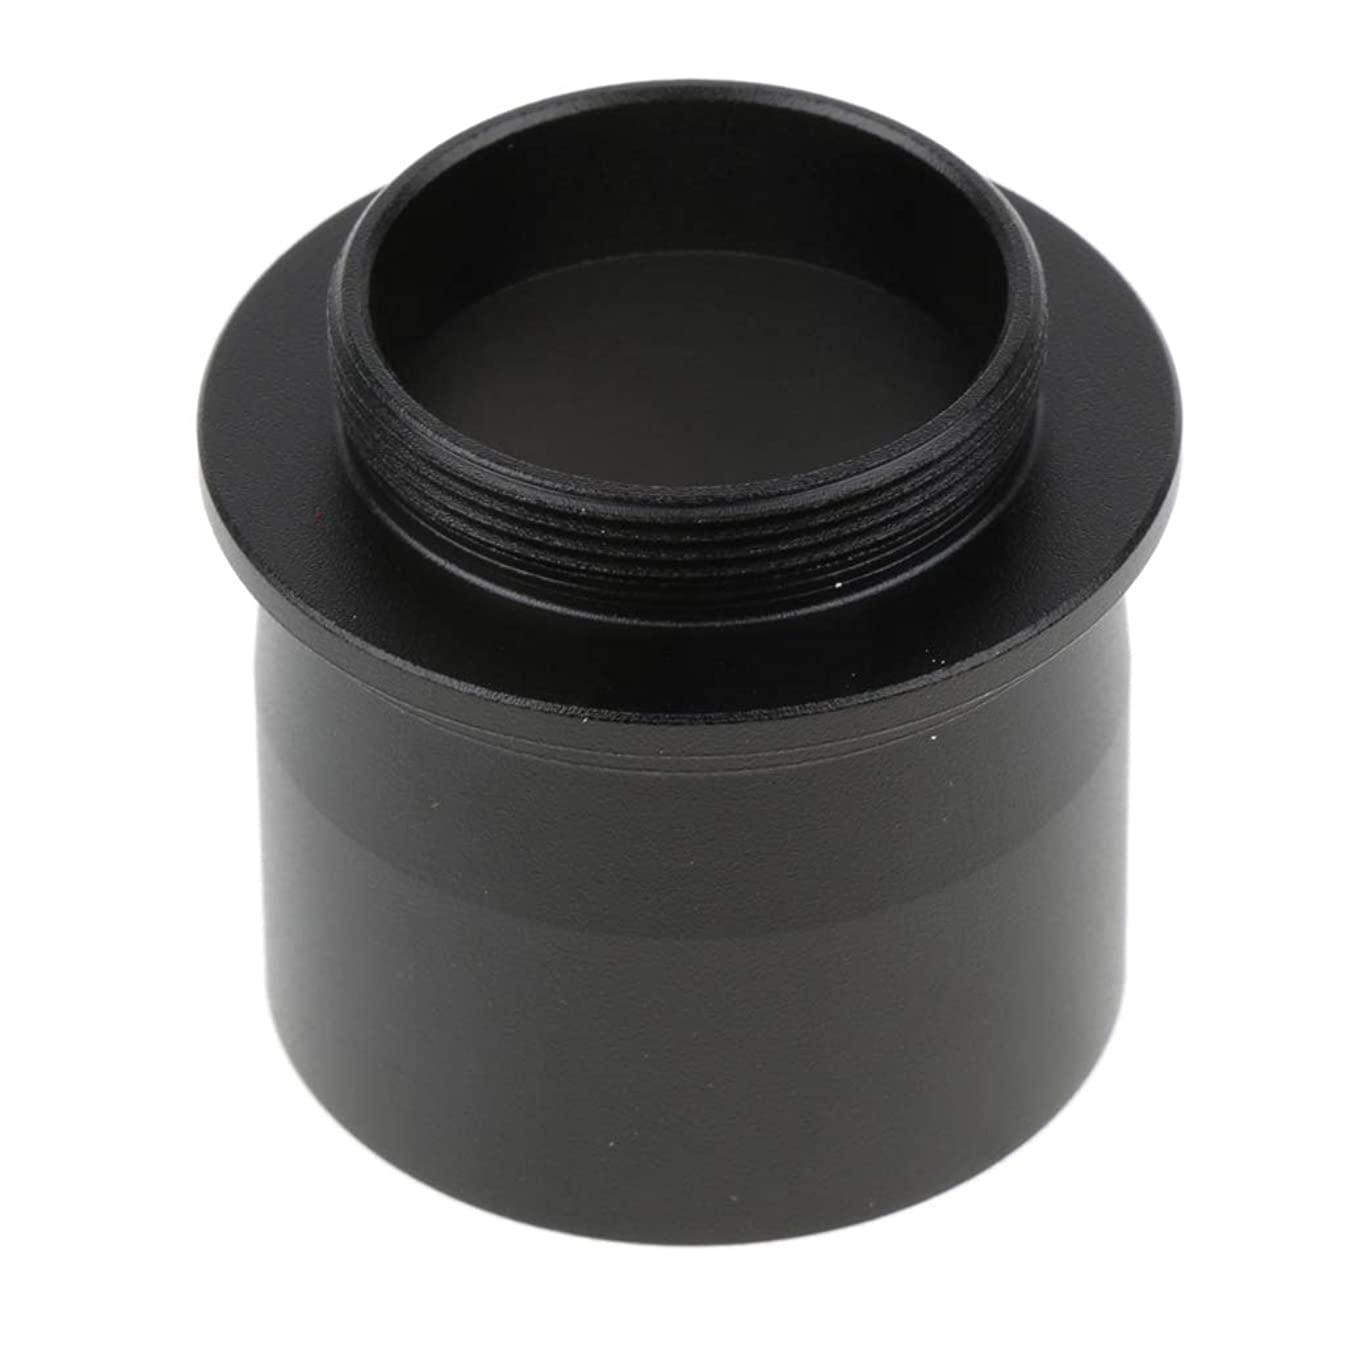 Prettyia 1.25-inch to C Port C-Mount Video Camera Lens Adapter Ring for Telescope Astronomy